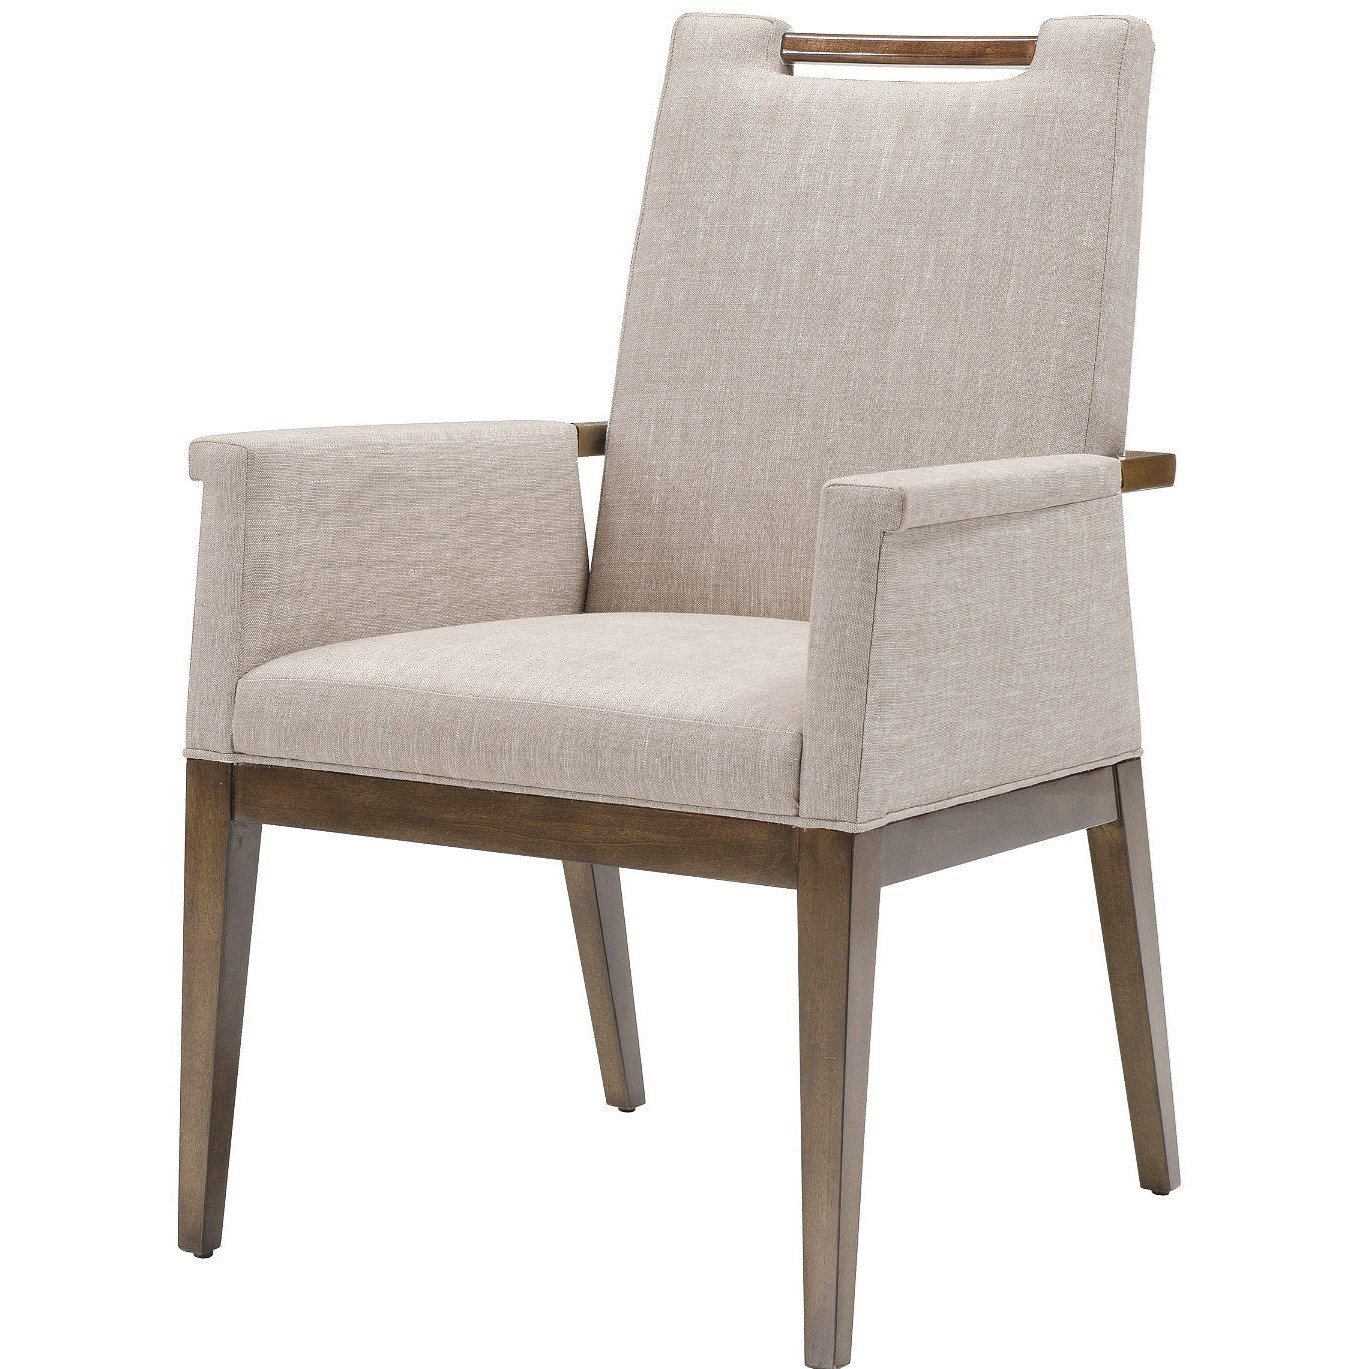 Accent Arm Chairs Accent Chairs Liv Upholstered Arm Chair With Exposed Wood By Belle Meade Signature At Jacksonville Furniture Mart